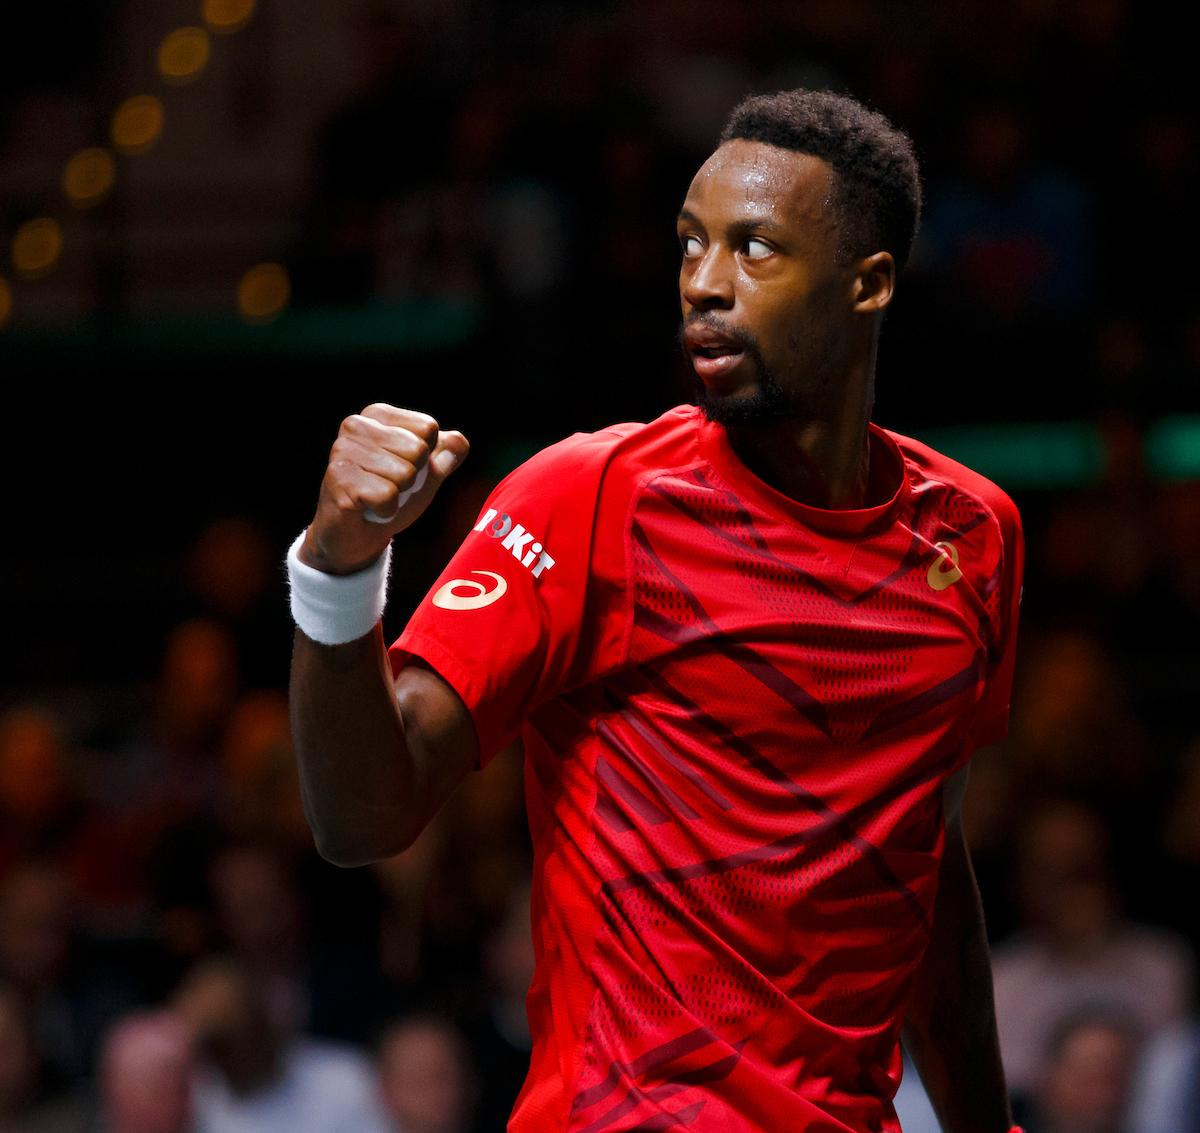 Title defence in sight for Gaël Monfils